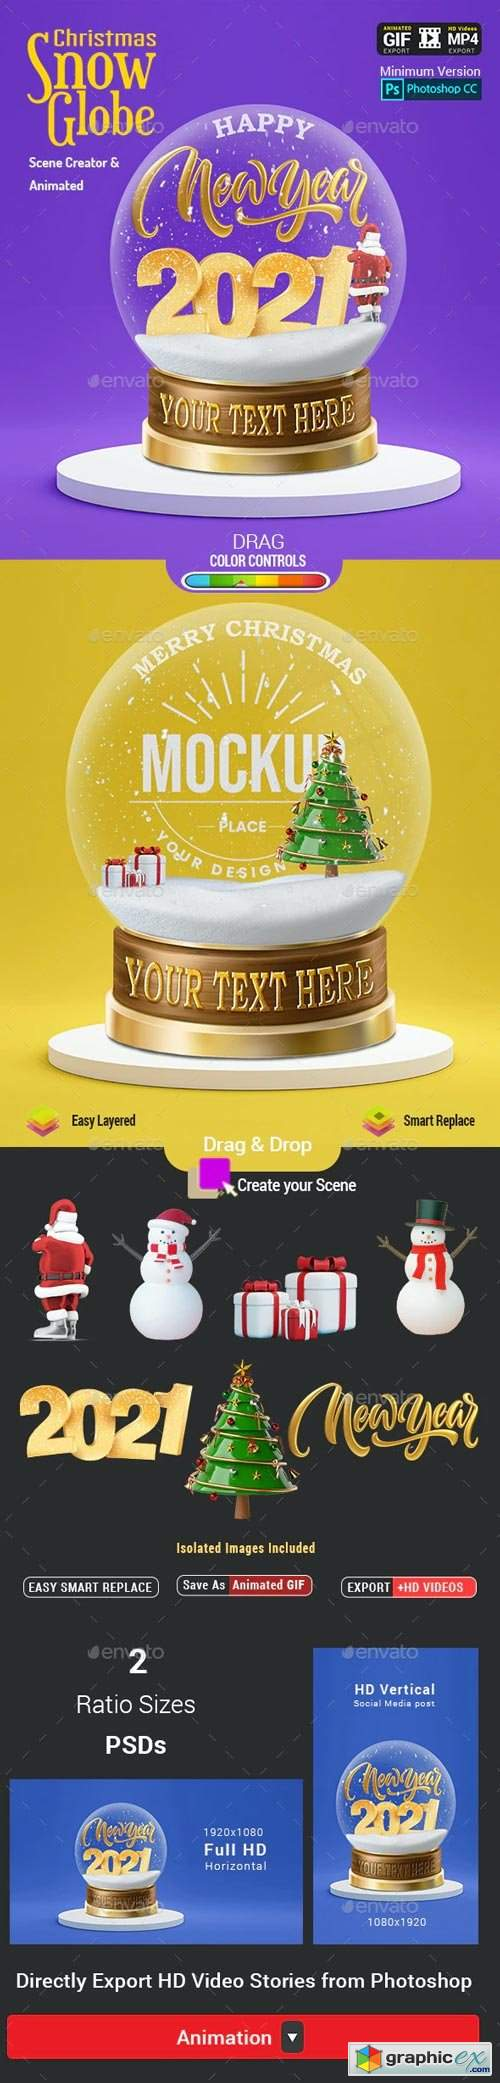 Christmas Snow Globe - Animated Scene Creator Mockup